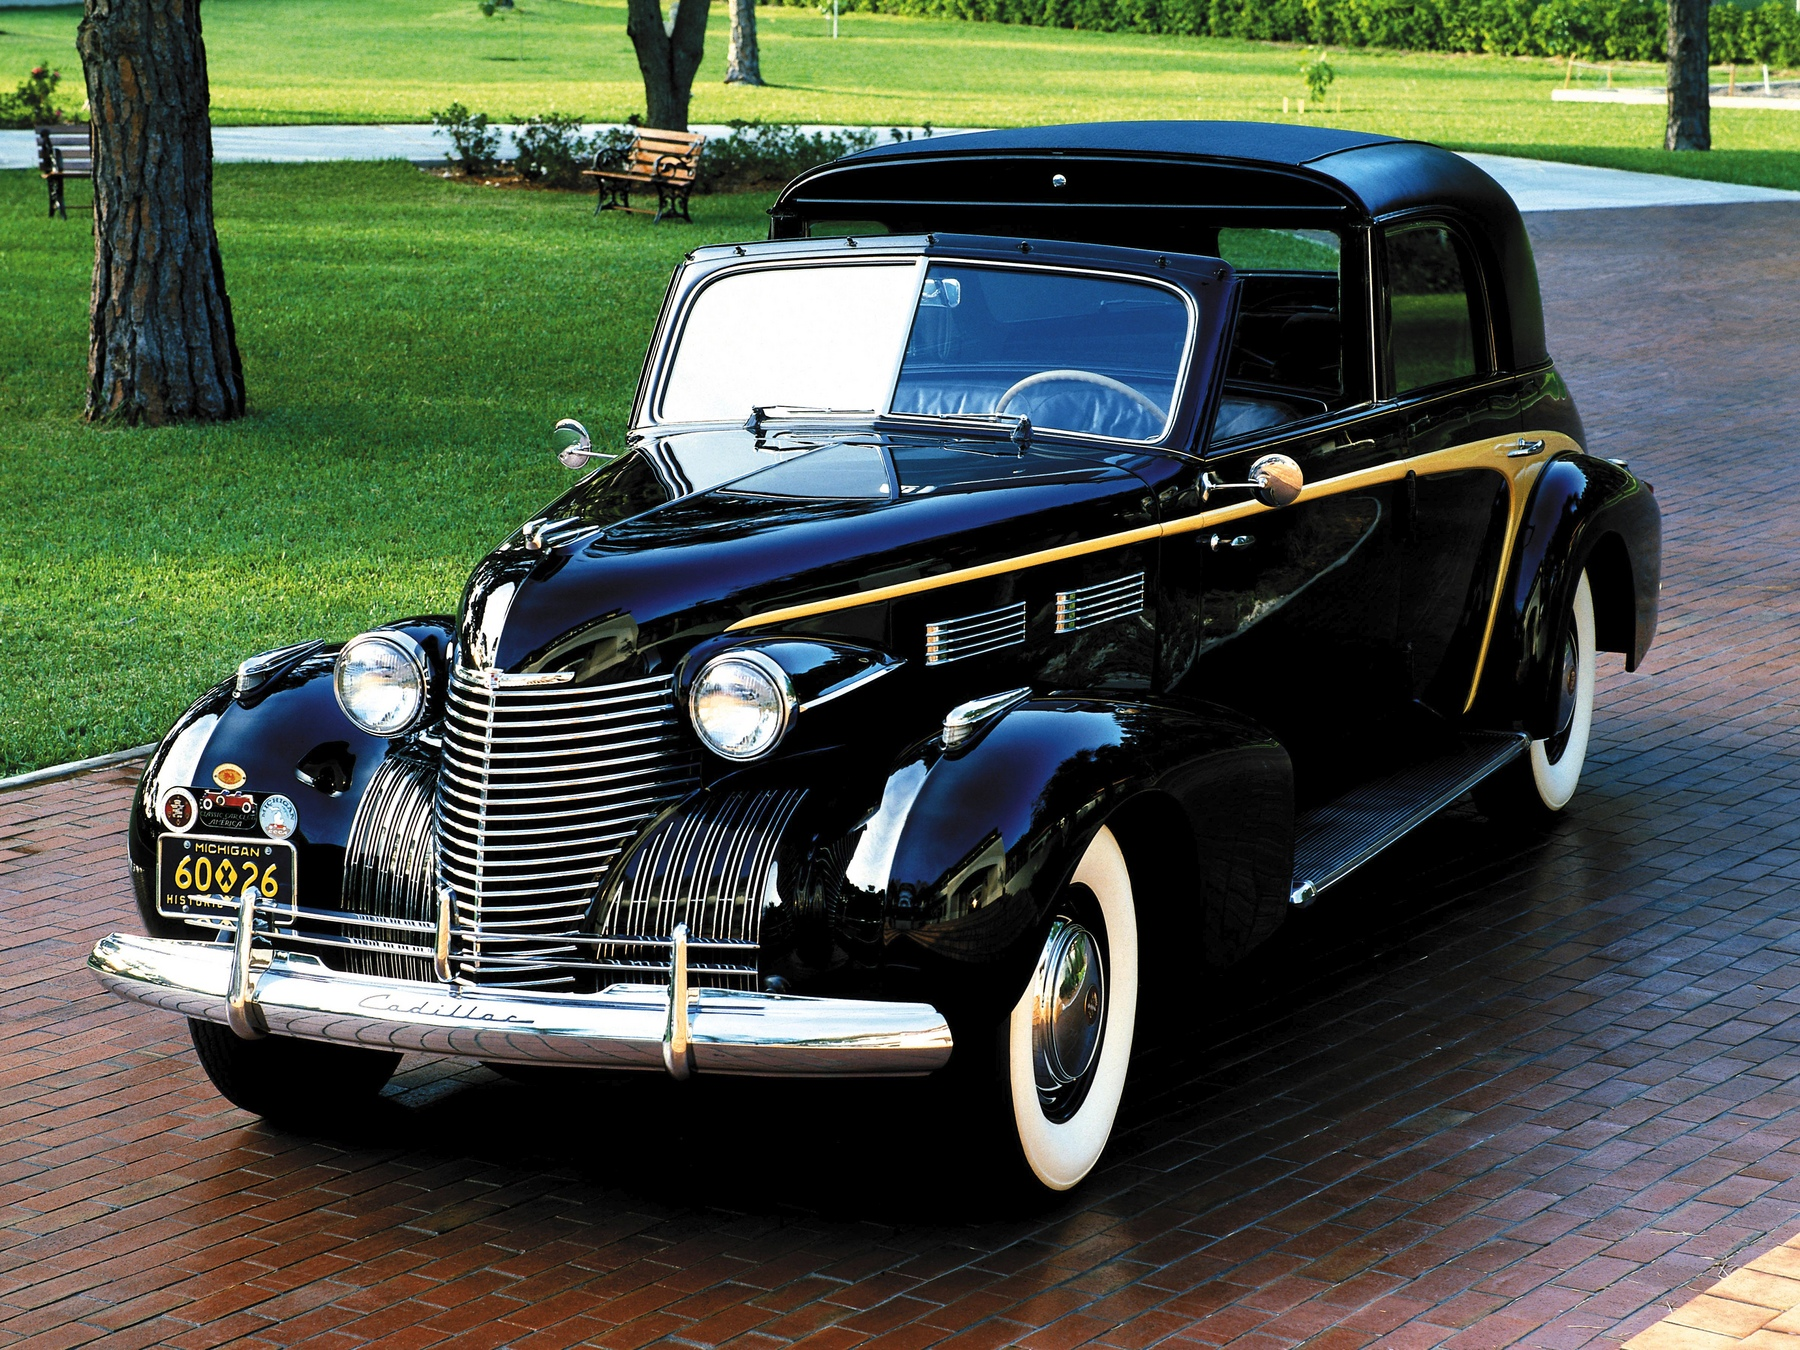 The Best Looking Classic Cars